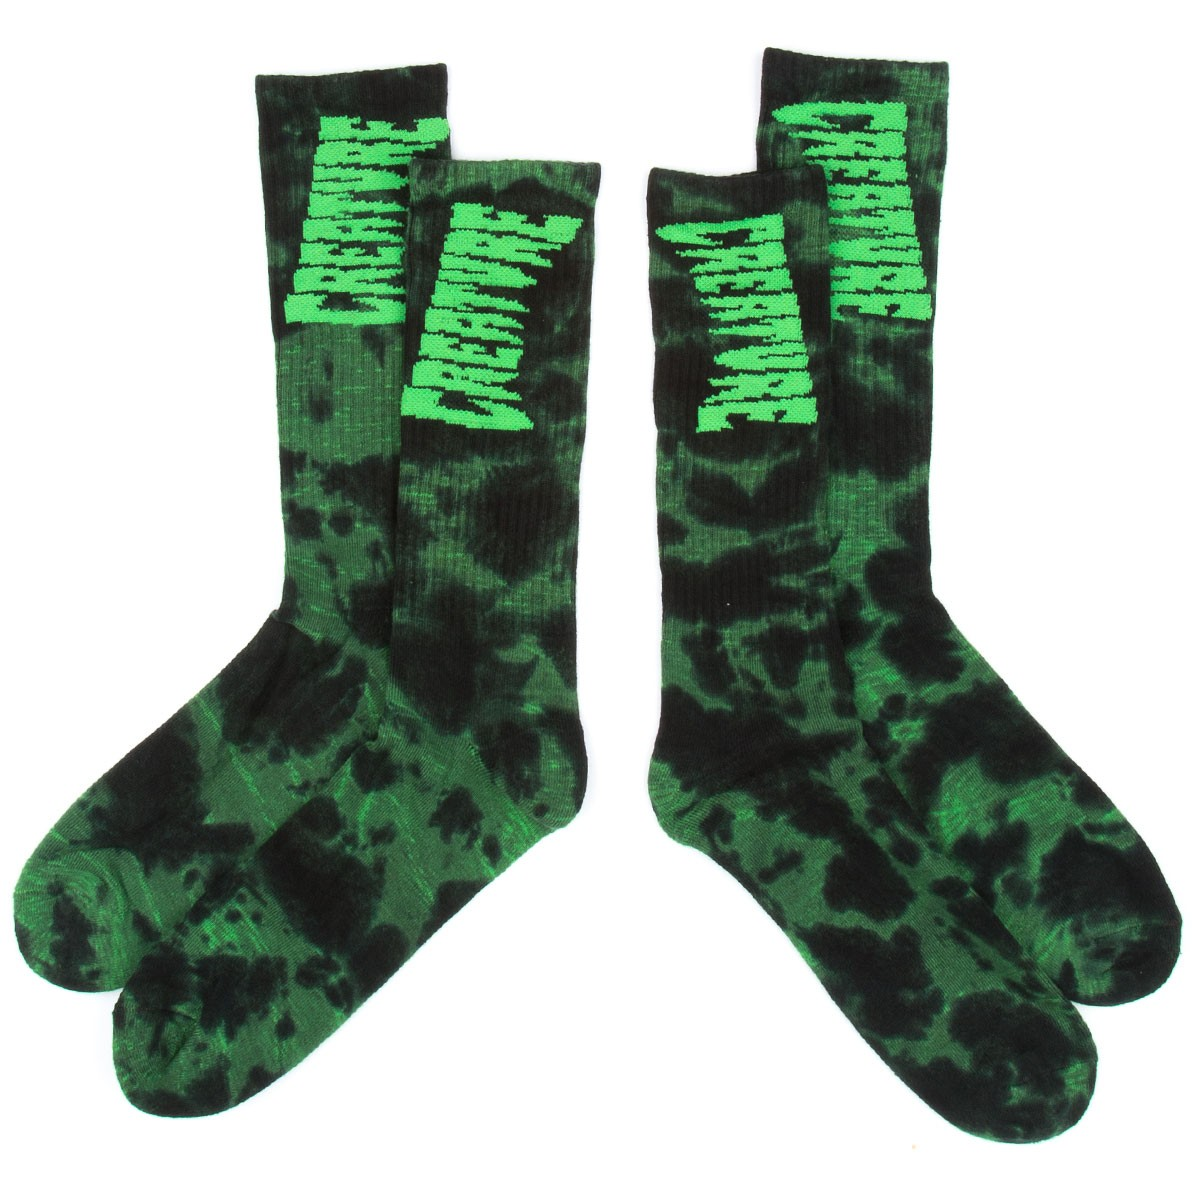 Creature Toxsocks Socks - Black/Green Tie Dye